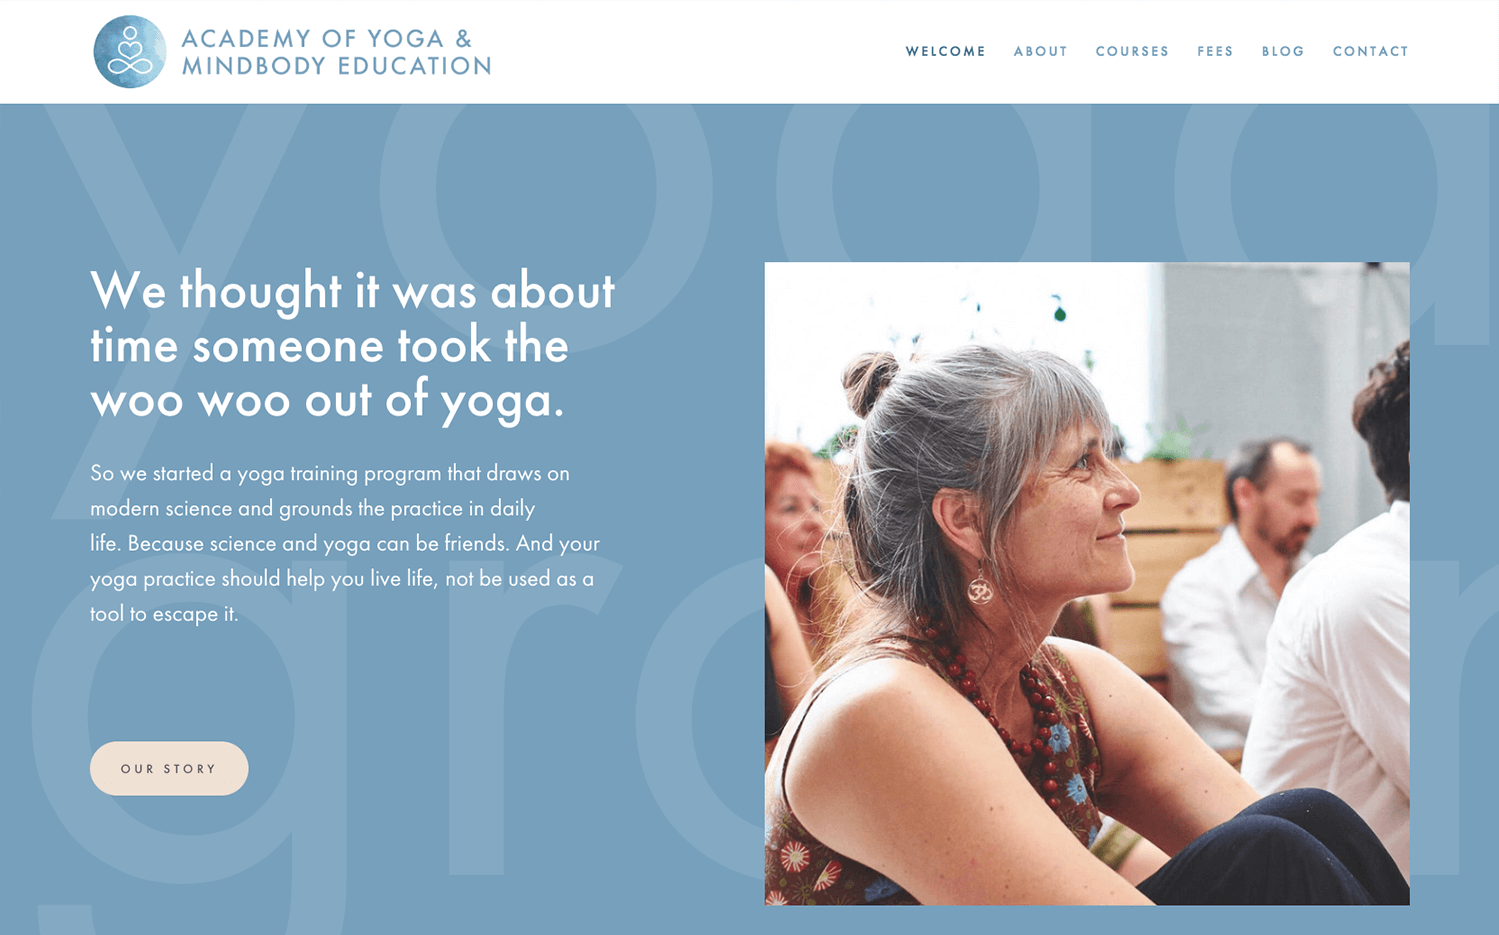 Academy of Yoga and Mindbody Education